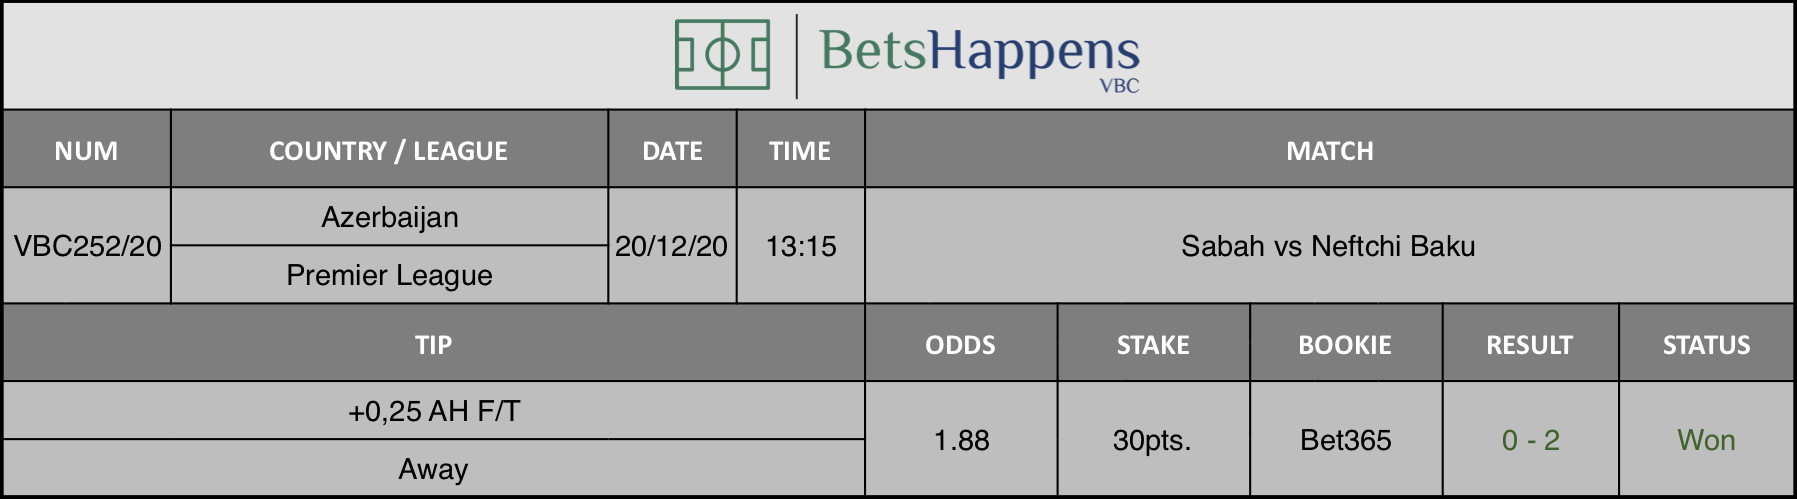 Results of our tip for the Sabah vs Neftchi Baku match where +0,25 AH F/T Away is recommended.